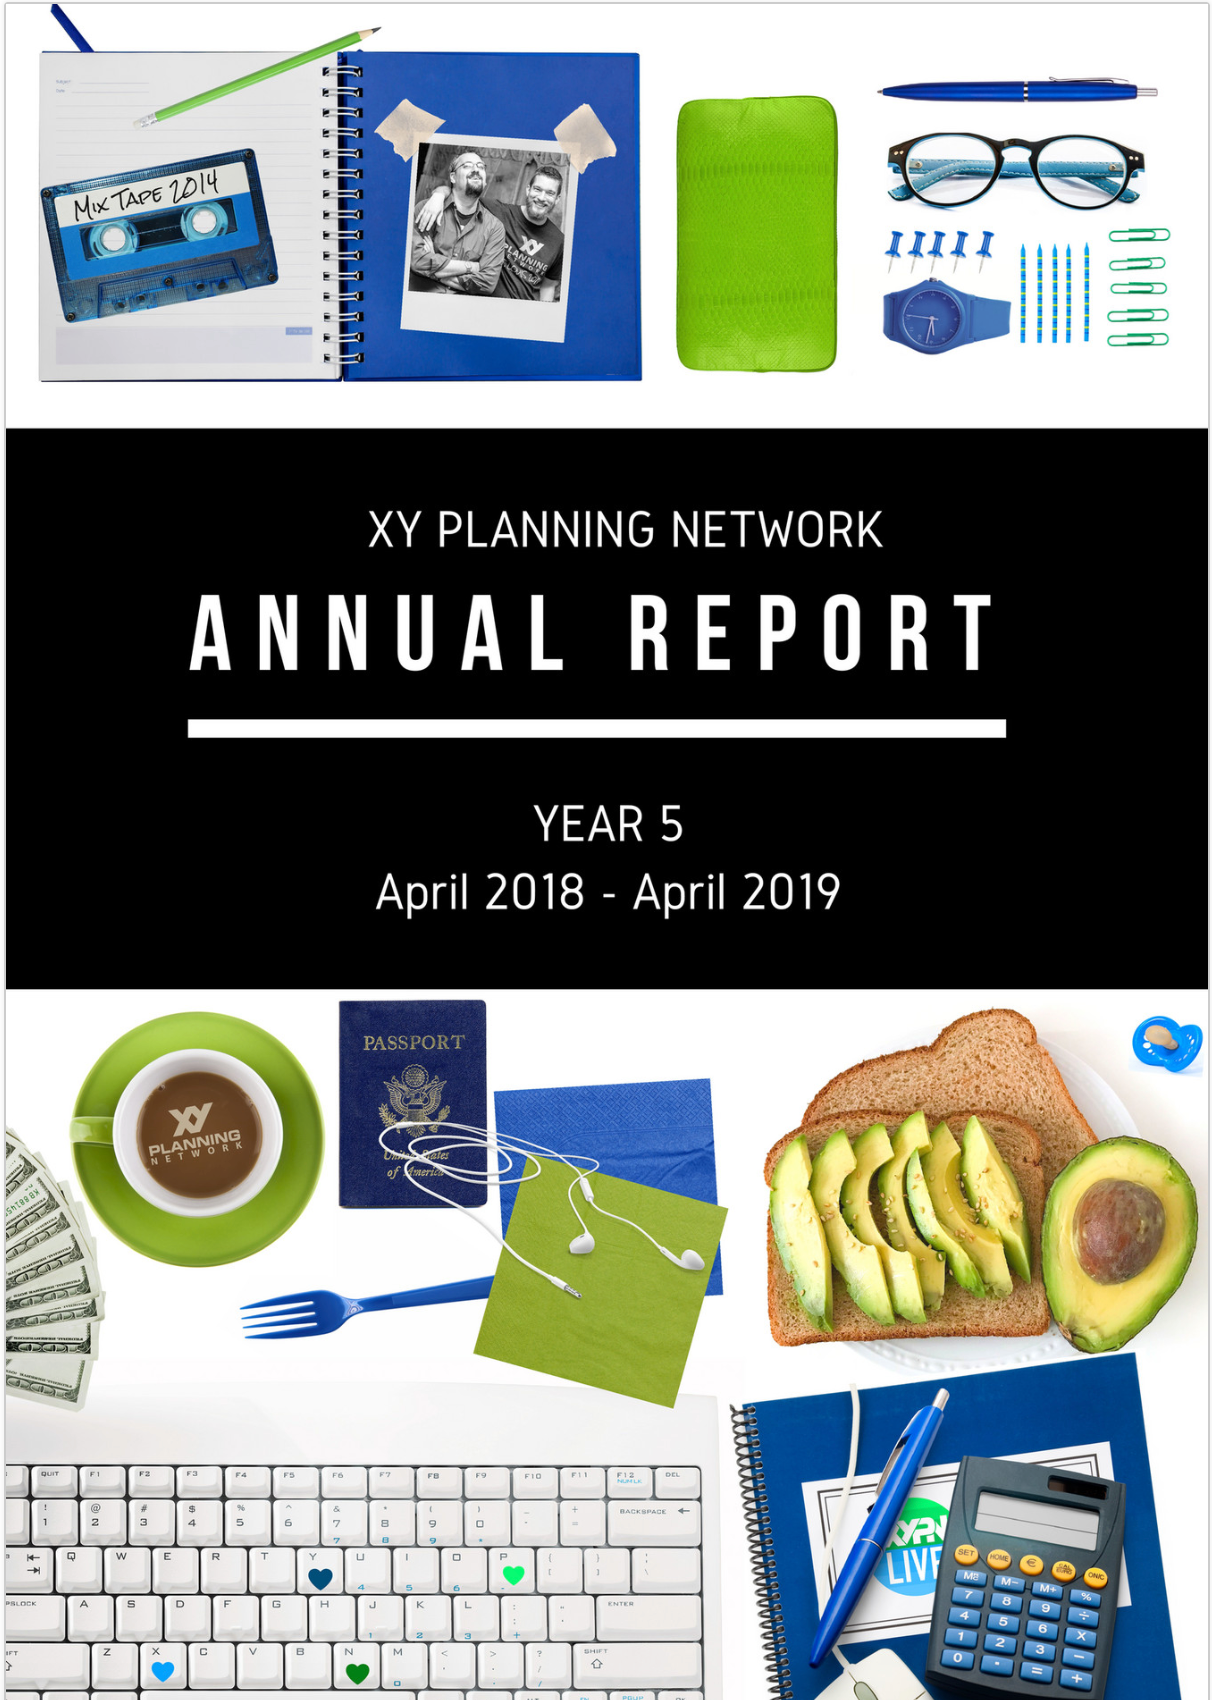 Year 5 Annual Report Cover